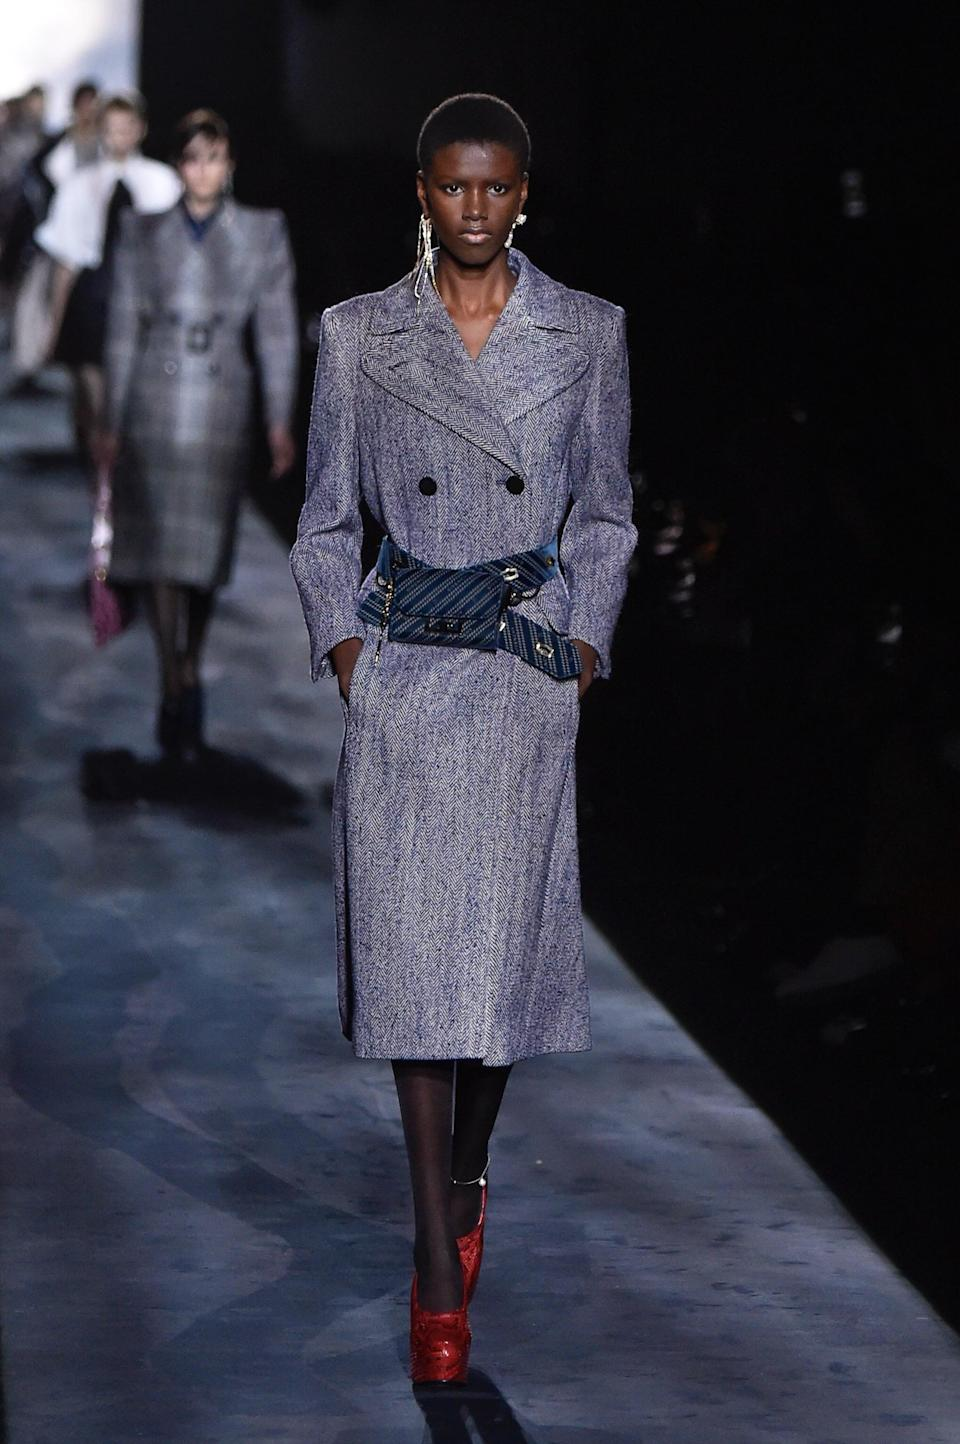 <p>After her debut at the Saint Laurent Fall 2019 runway, the Dominican model has been on the rise, booking shows like Gucci, Valentino, and Miu Miu.</p>